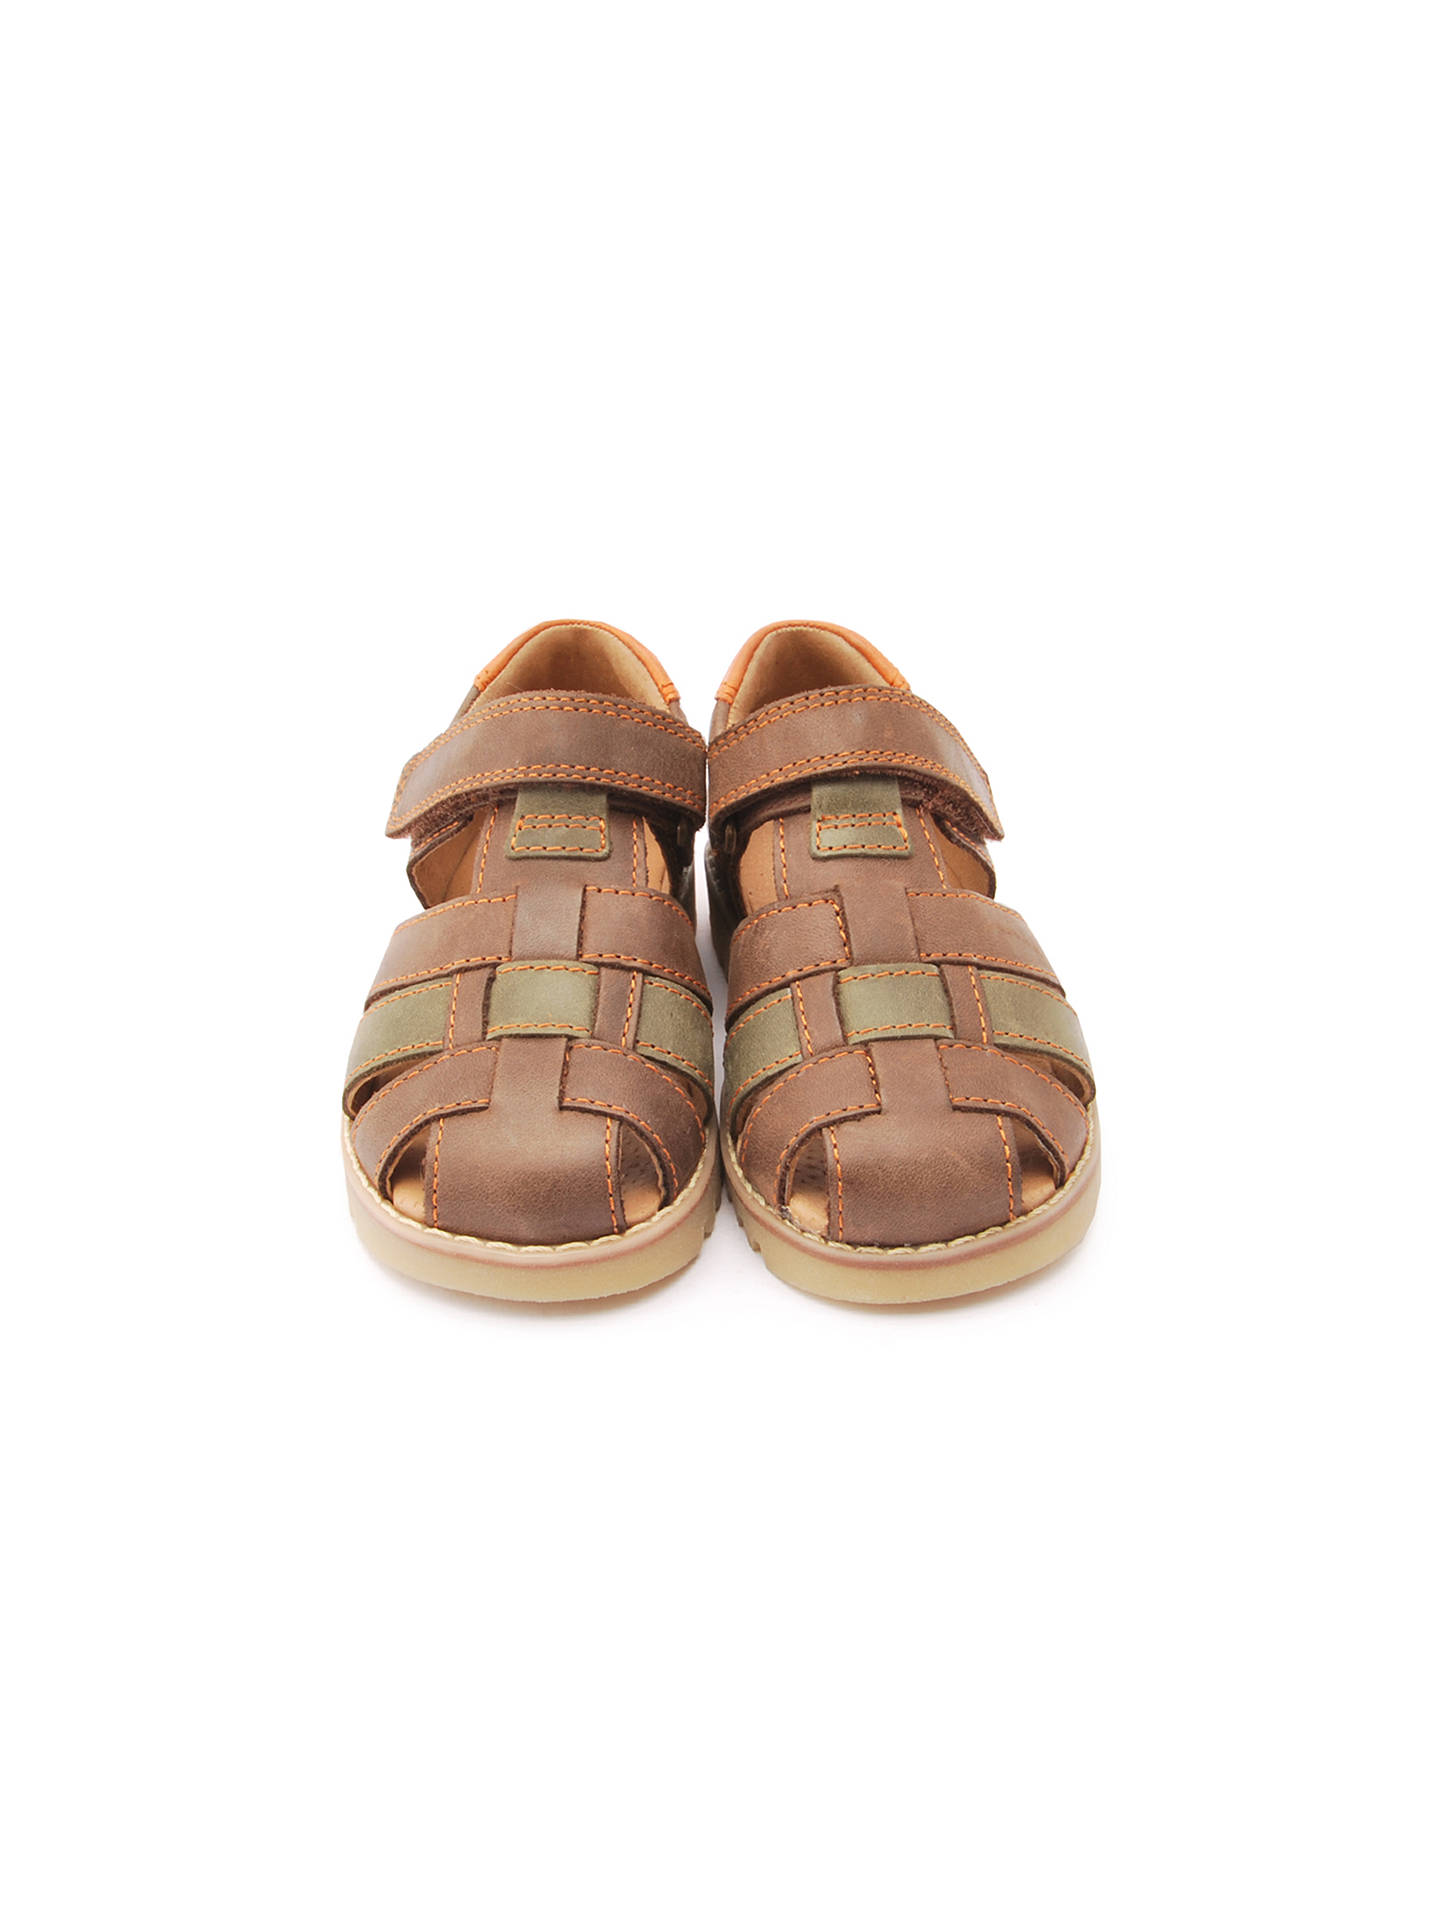 BuyStart-rite Children's Climb Leather Riptape Sandals, Brown, 24F Online at johnlewis.com